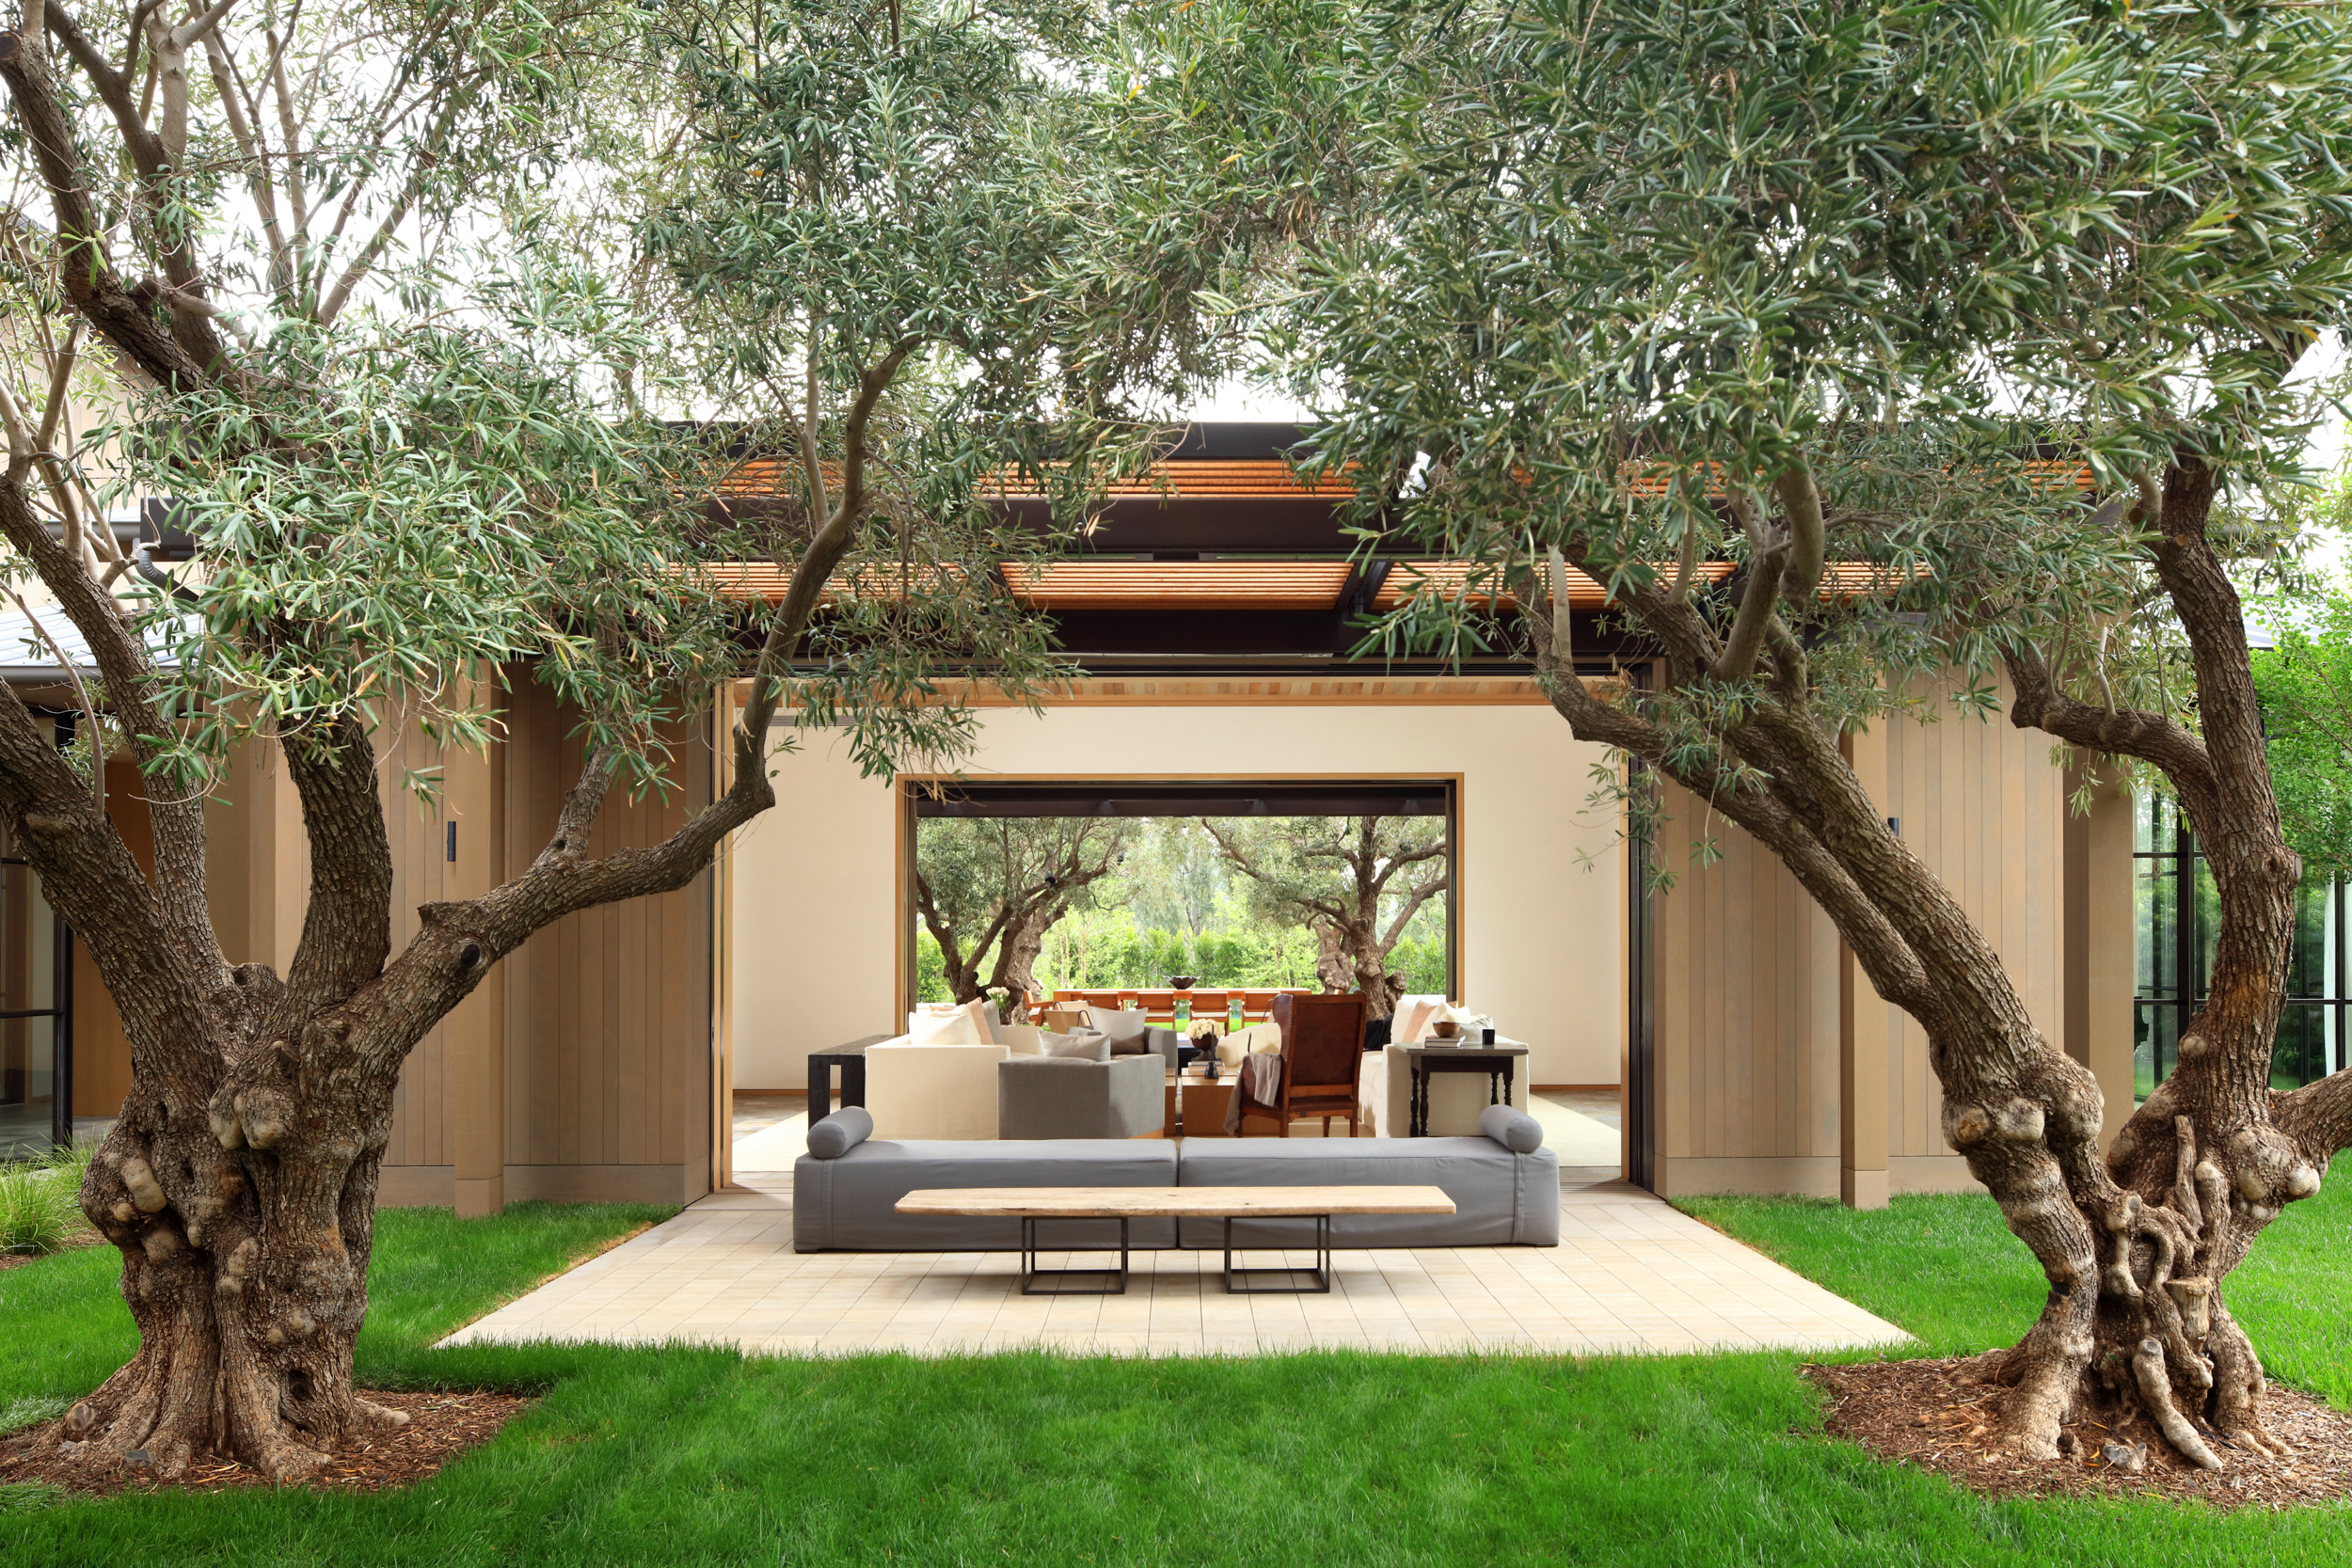 outdoor lounge area with couch under olive trees